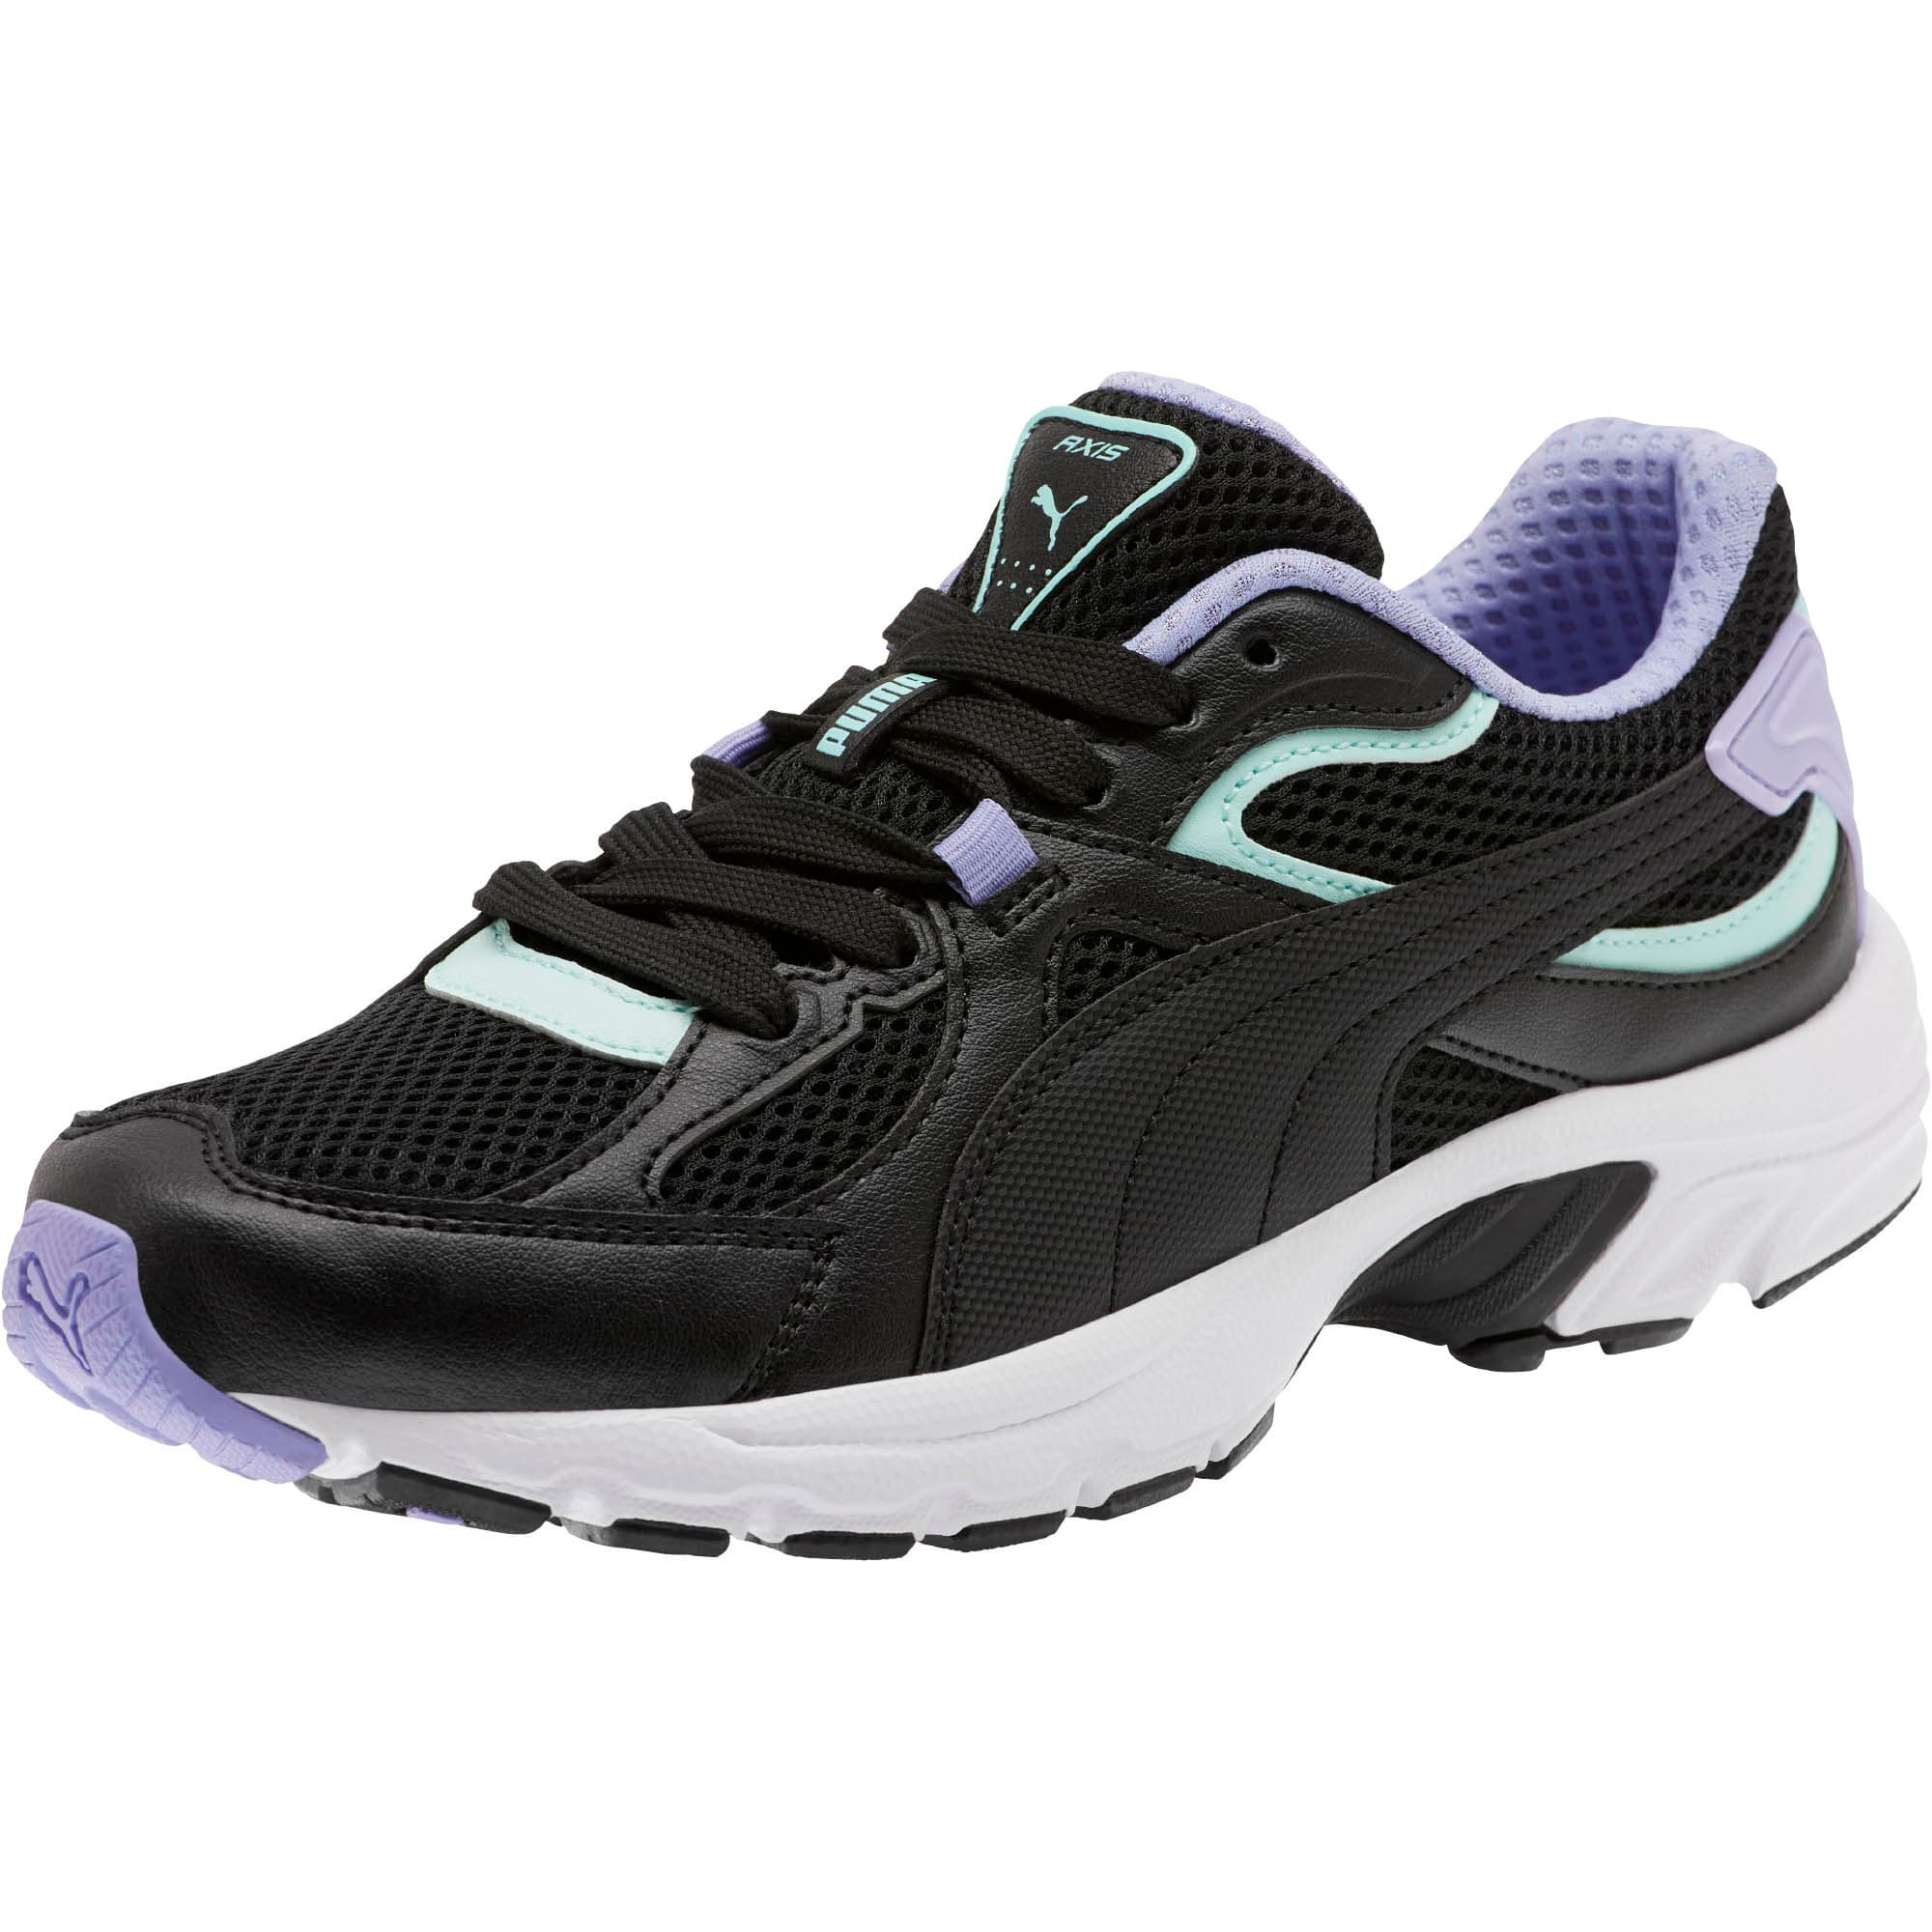 Thumbnail 1 of Axis Plus 90s Women's Sneakers, Black-F Aqua-S Lavender-Wht, medium